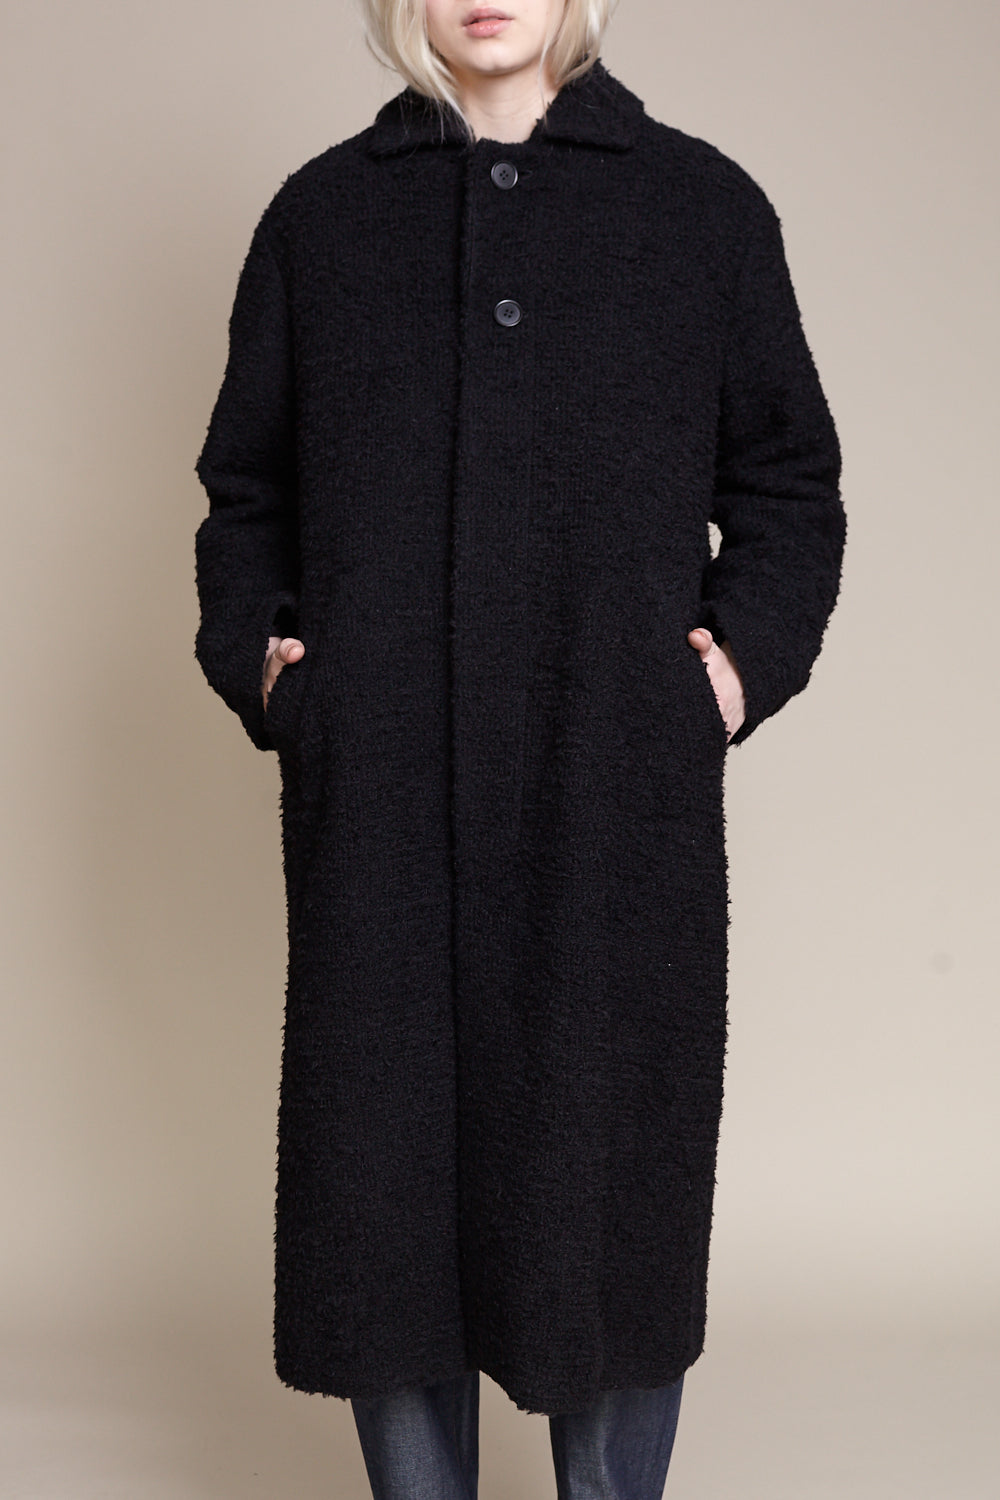 pas de calais Coat in Black - Vert & Vogue